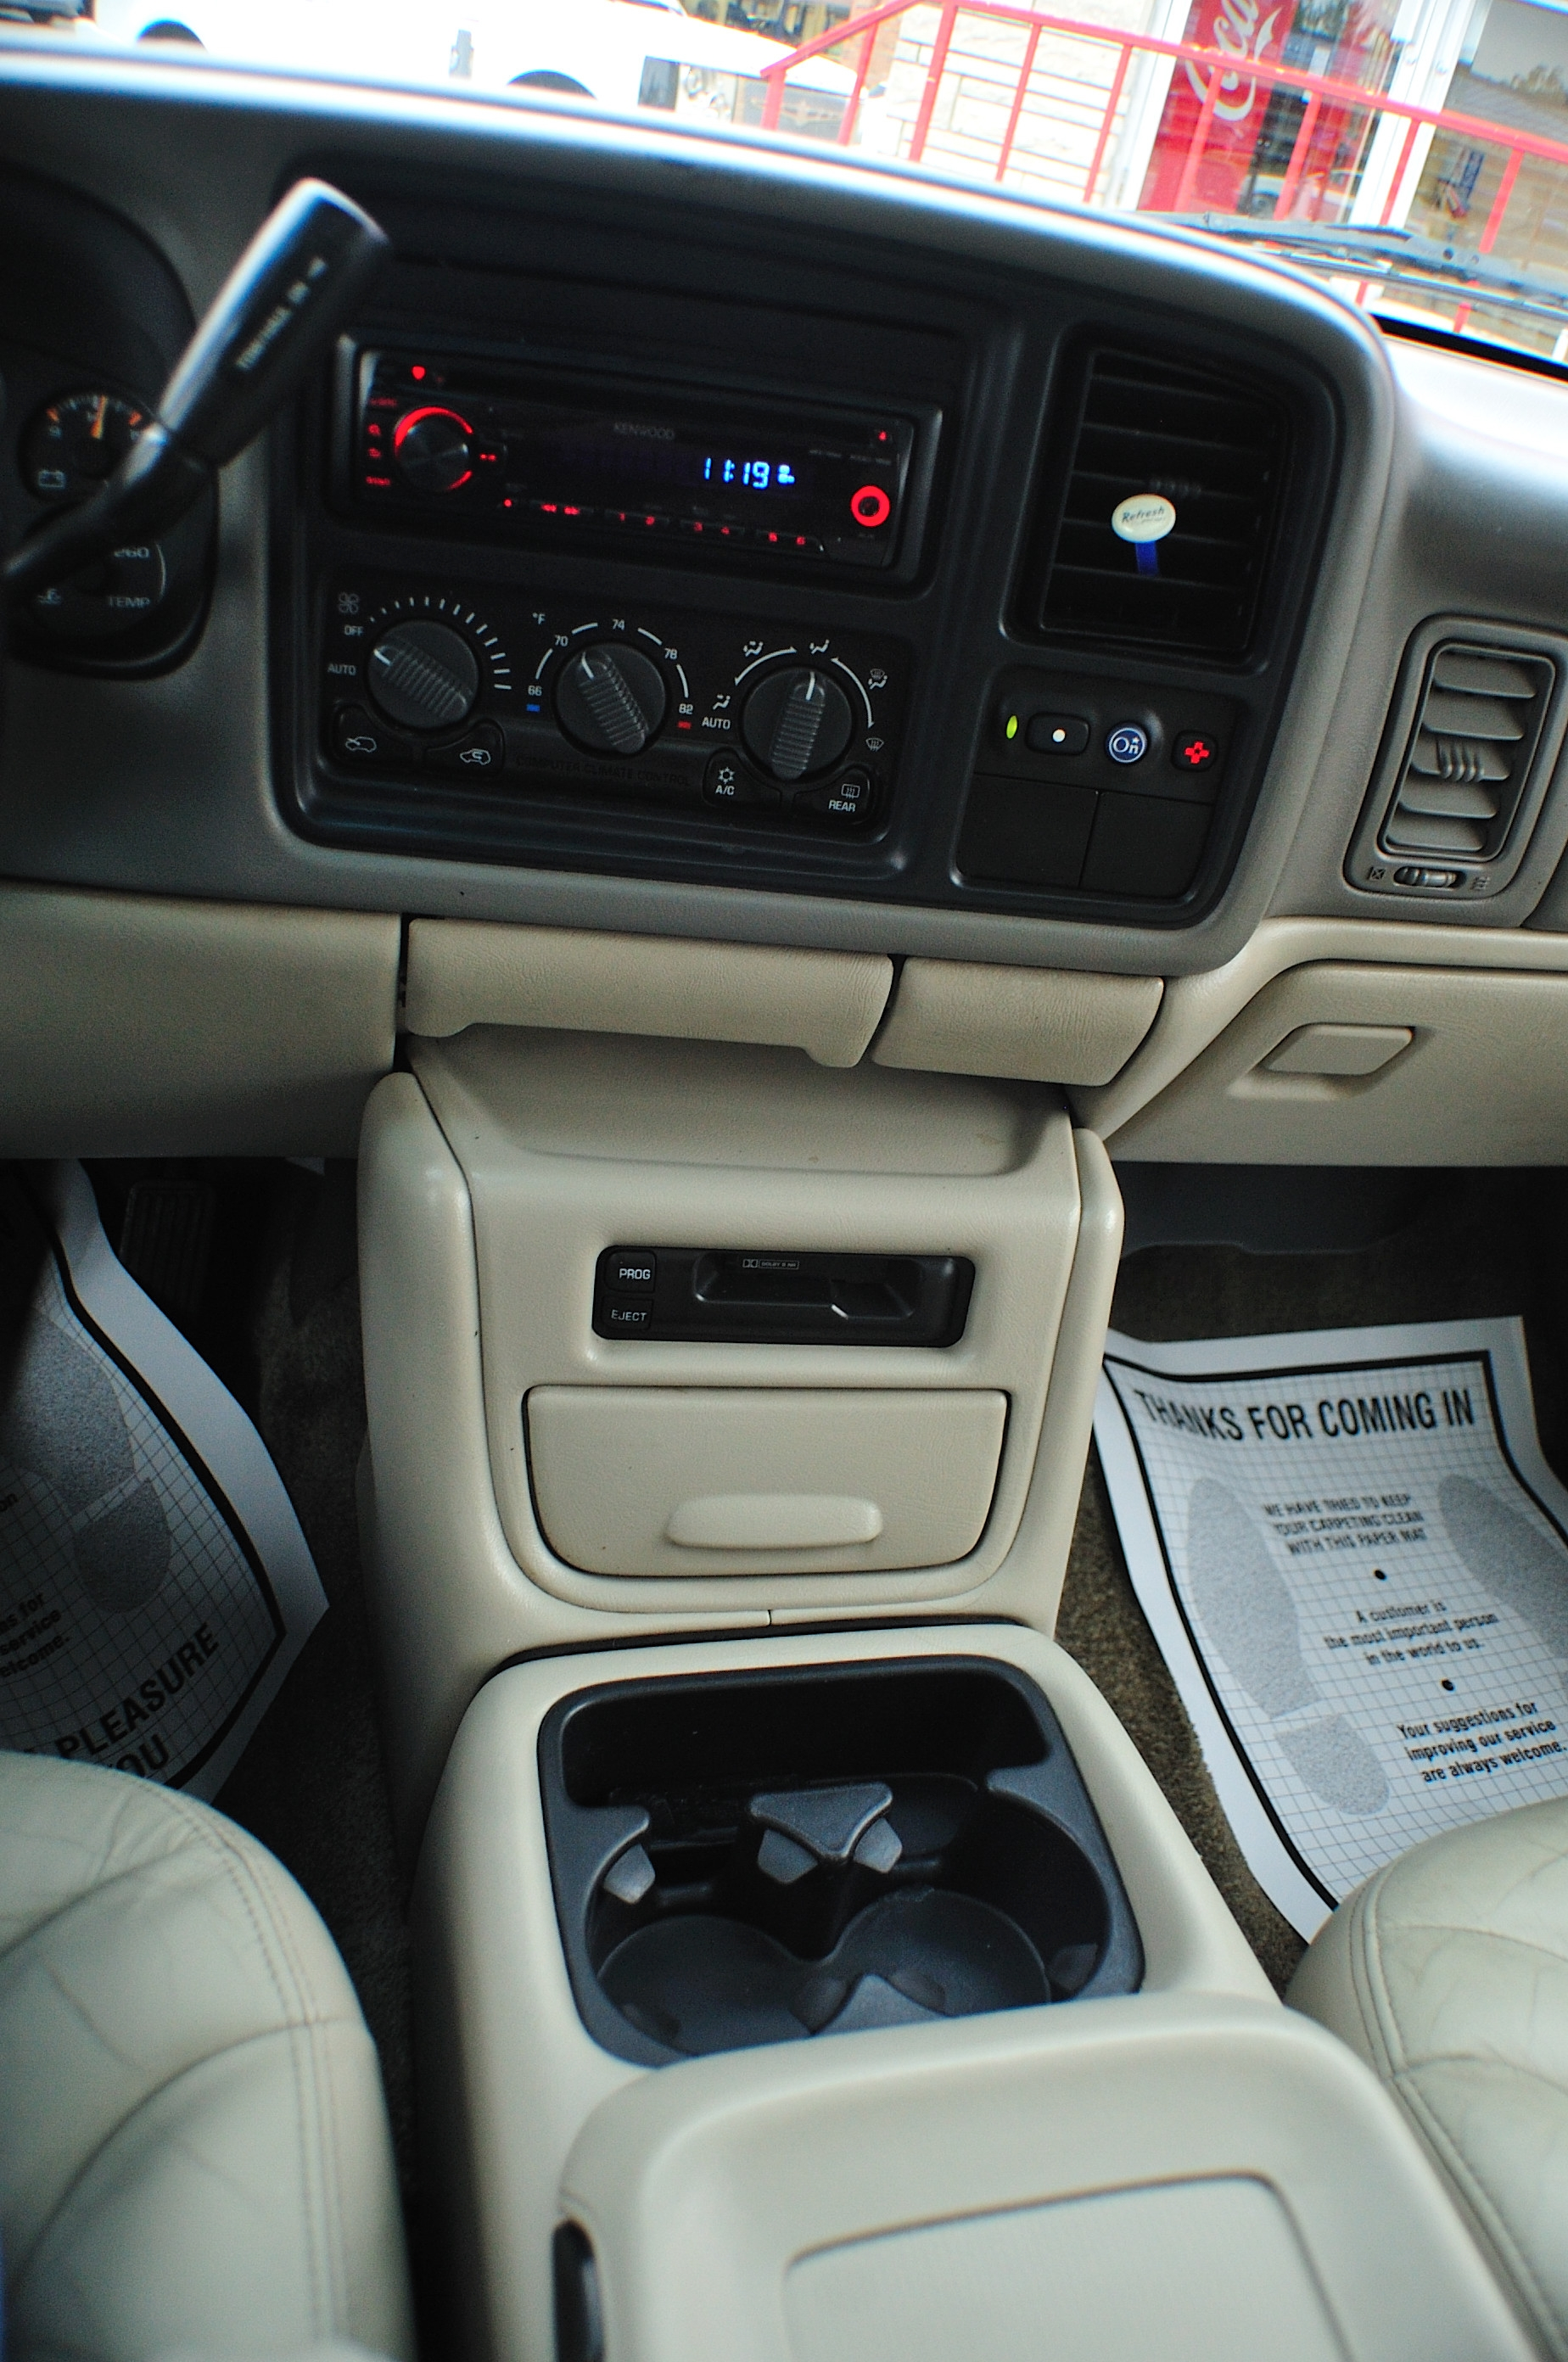 2001 GMC Yukon XL SLT 4x4 Pewter Used SUV Sale Long Grove Mettawa Mundelein